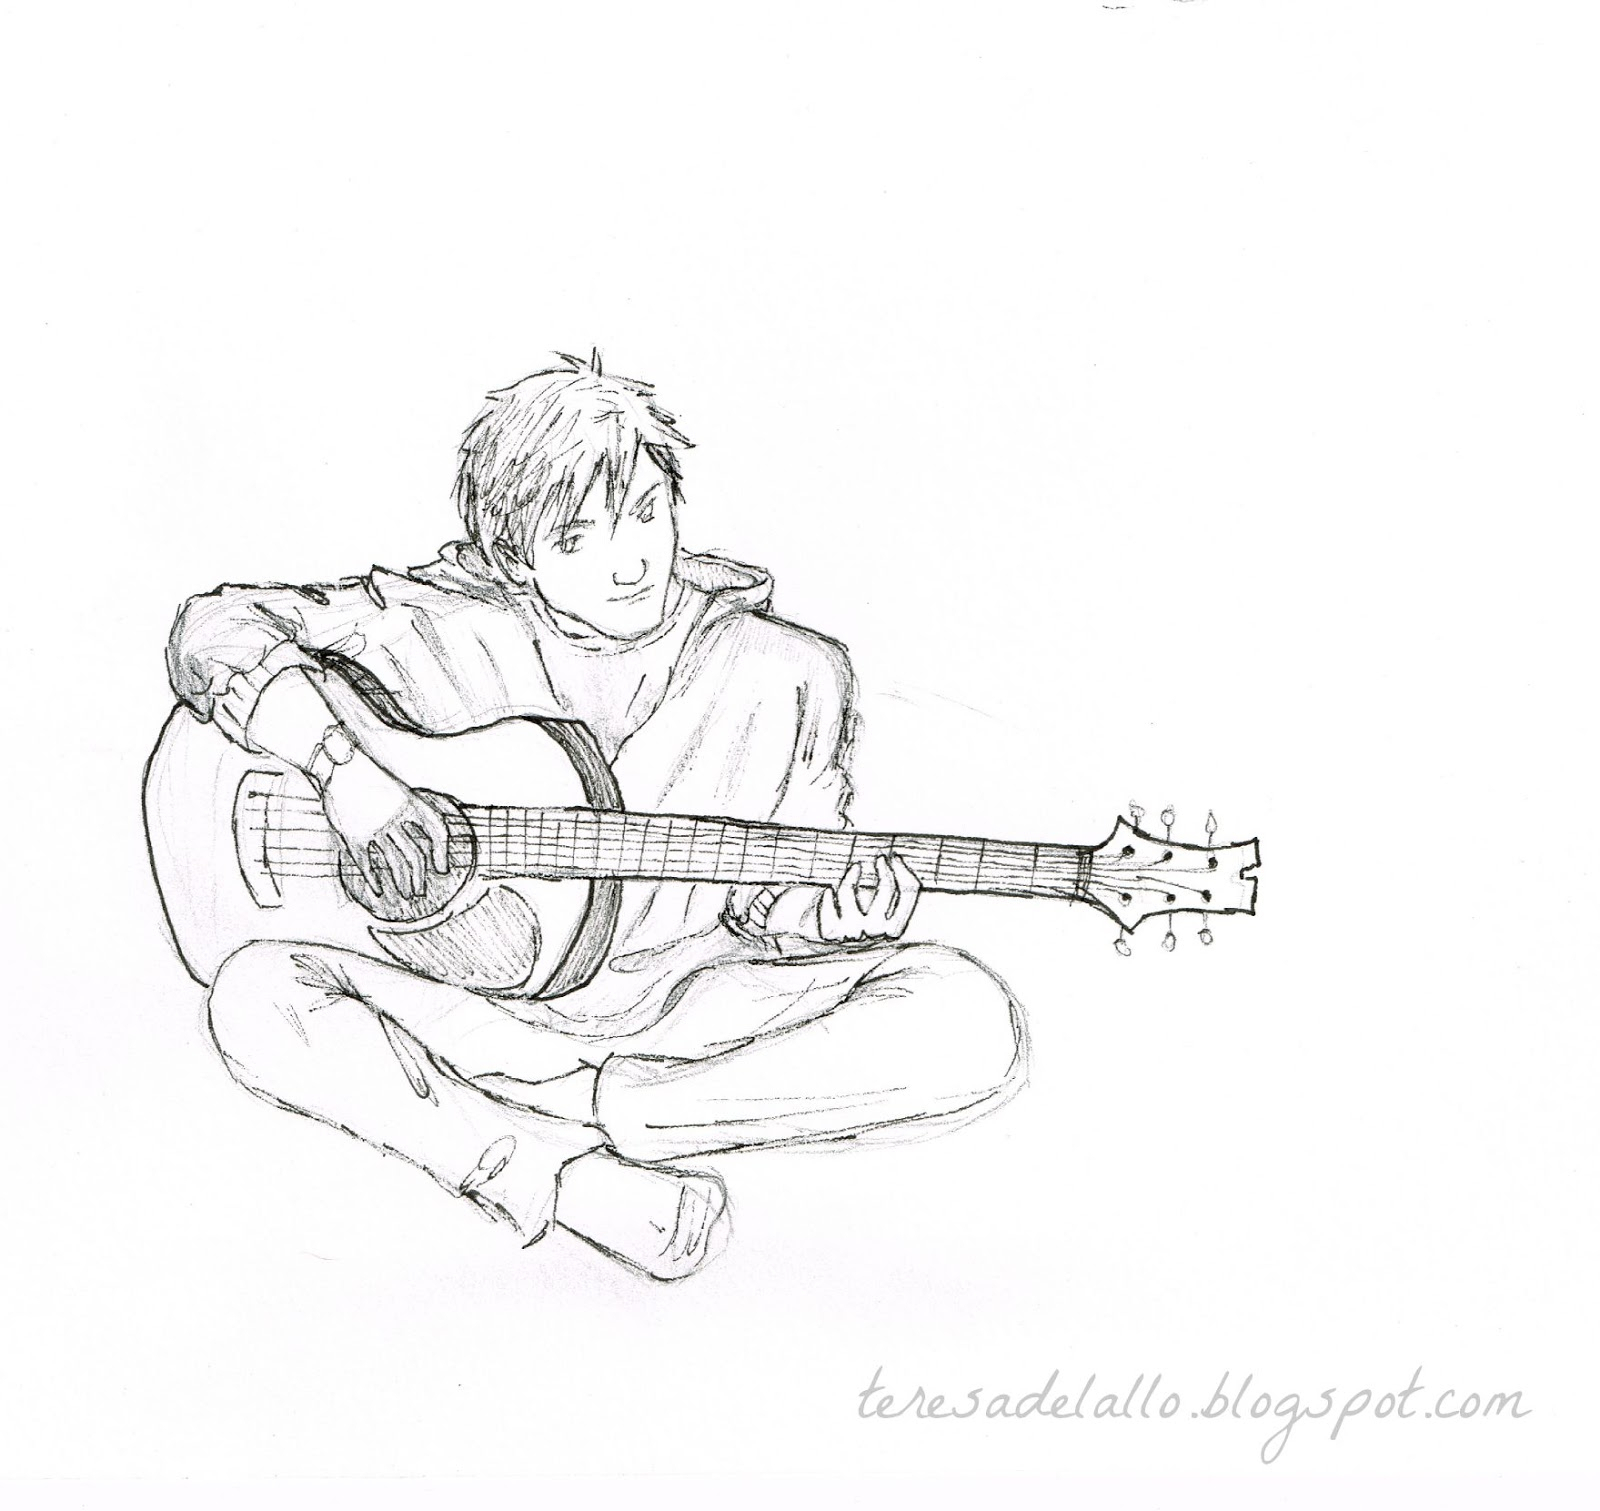 1600x1511 Sad Boy Pencil Draw Image With Guitar Sad Boy Guitar Pencil Sketch